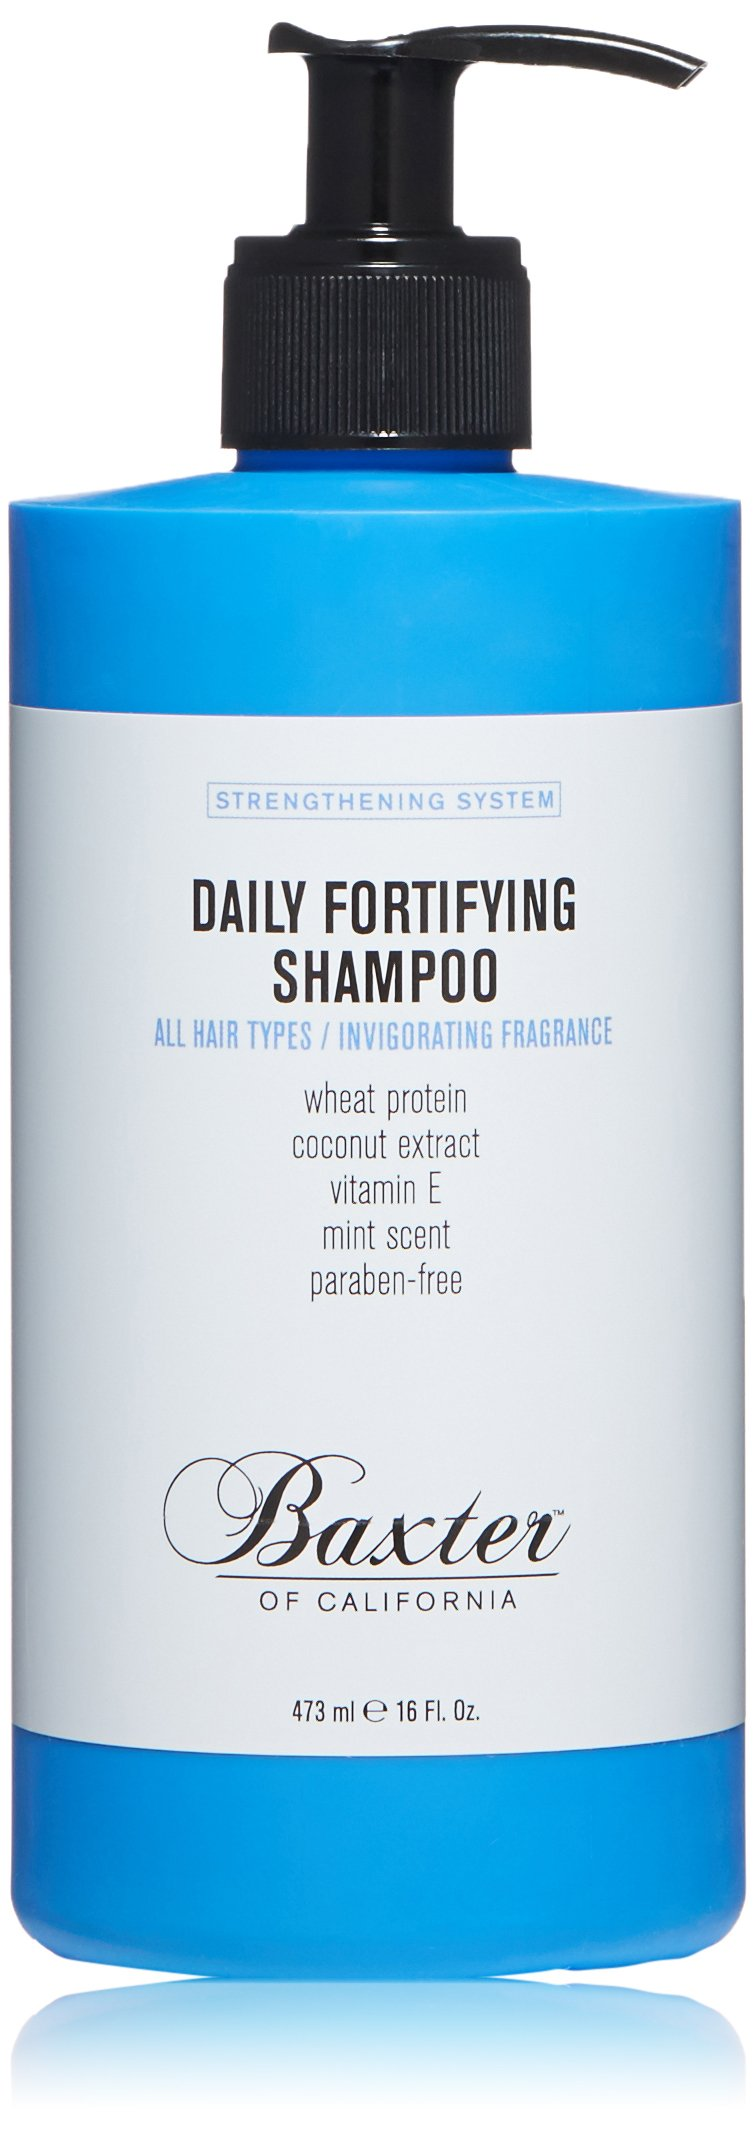 Baxter of California Daily Fortifying Shampoo for Men | All Hair Types| Cleanses and Strengthens | Fresh Mint Scent | 16 oz.